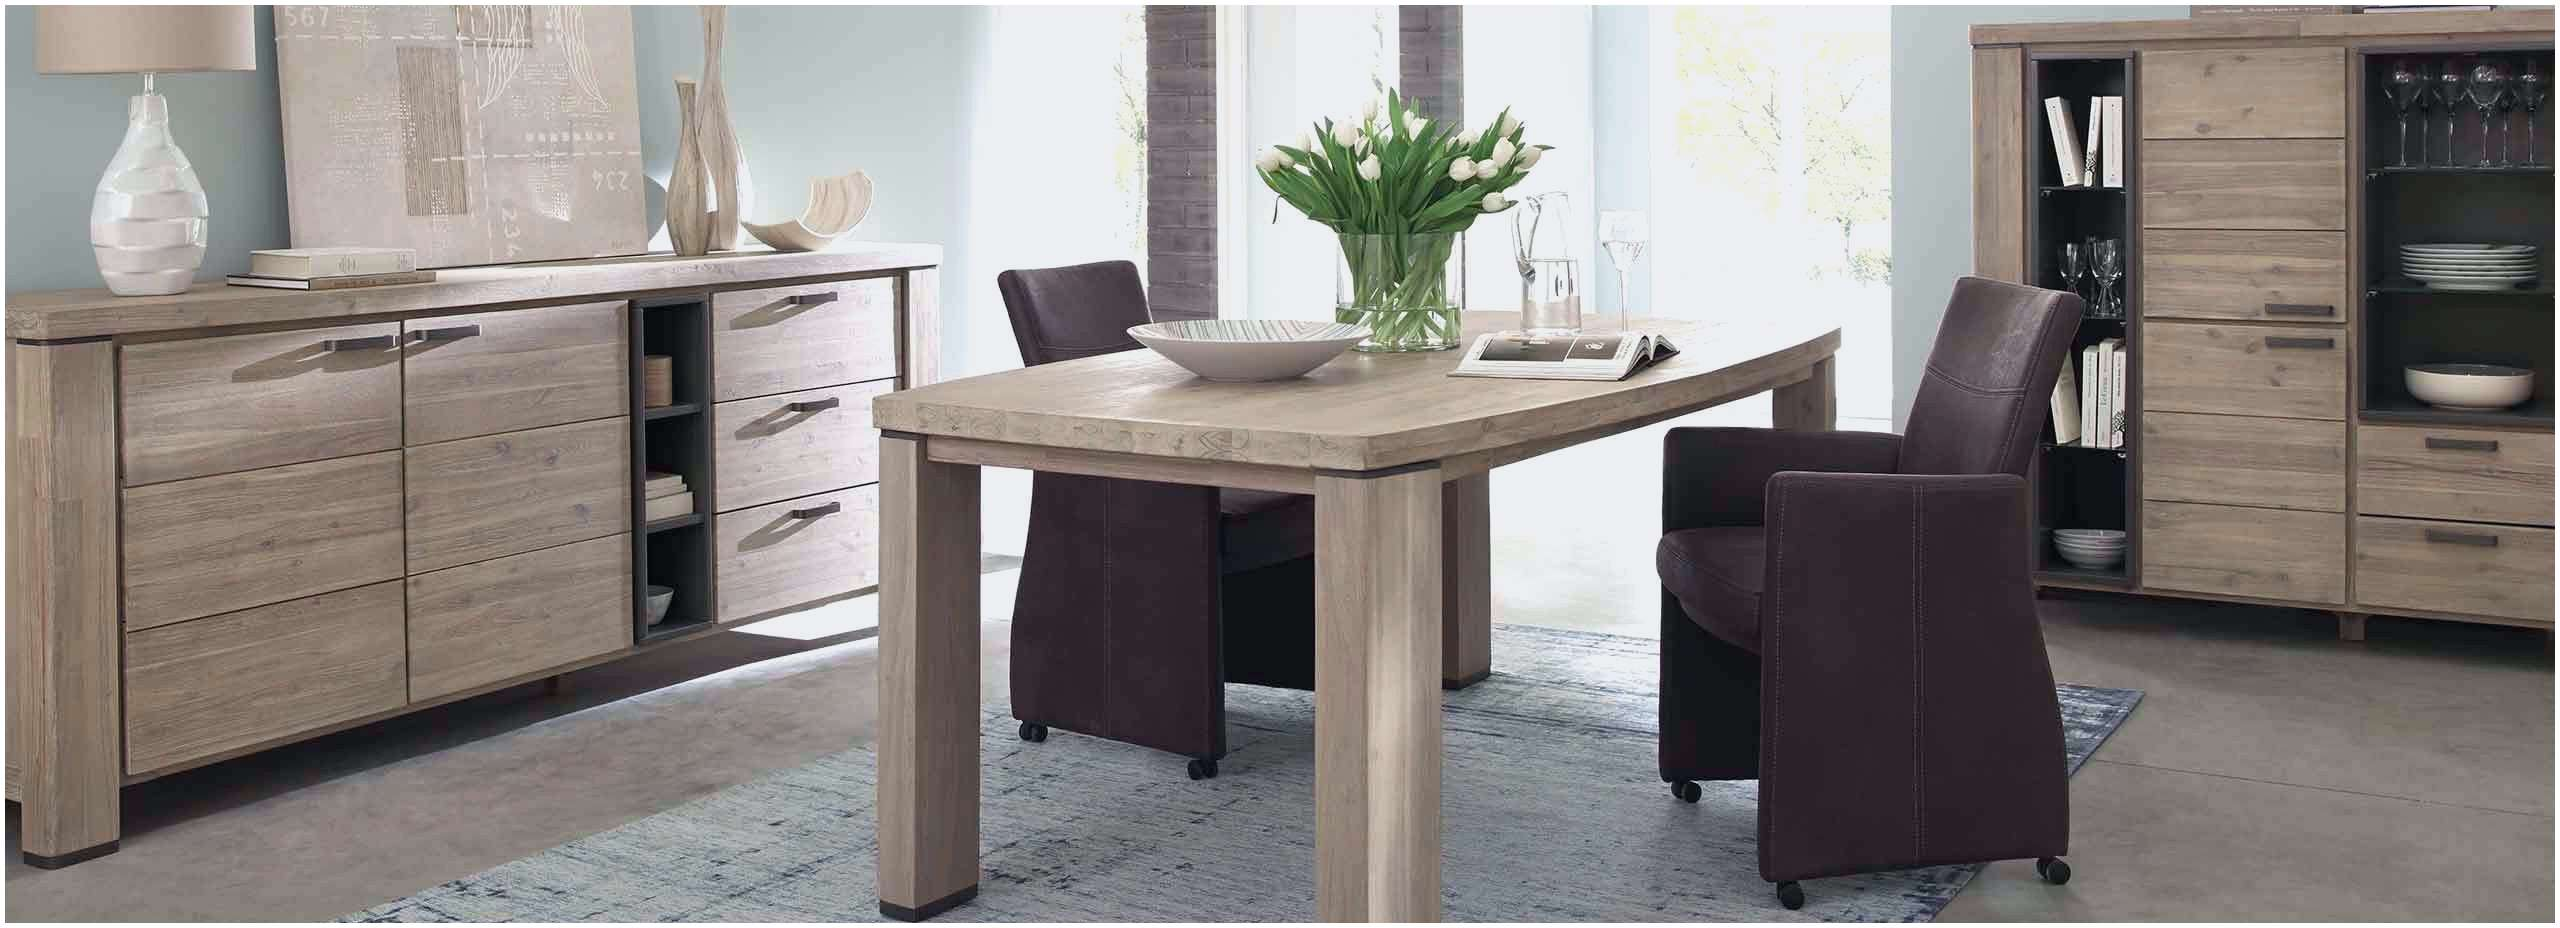 Salon Jardin Modulable Best Of Table A Manger Weba Of 32 Beau Salon Jardin Modulable